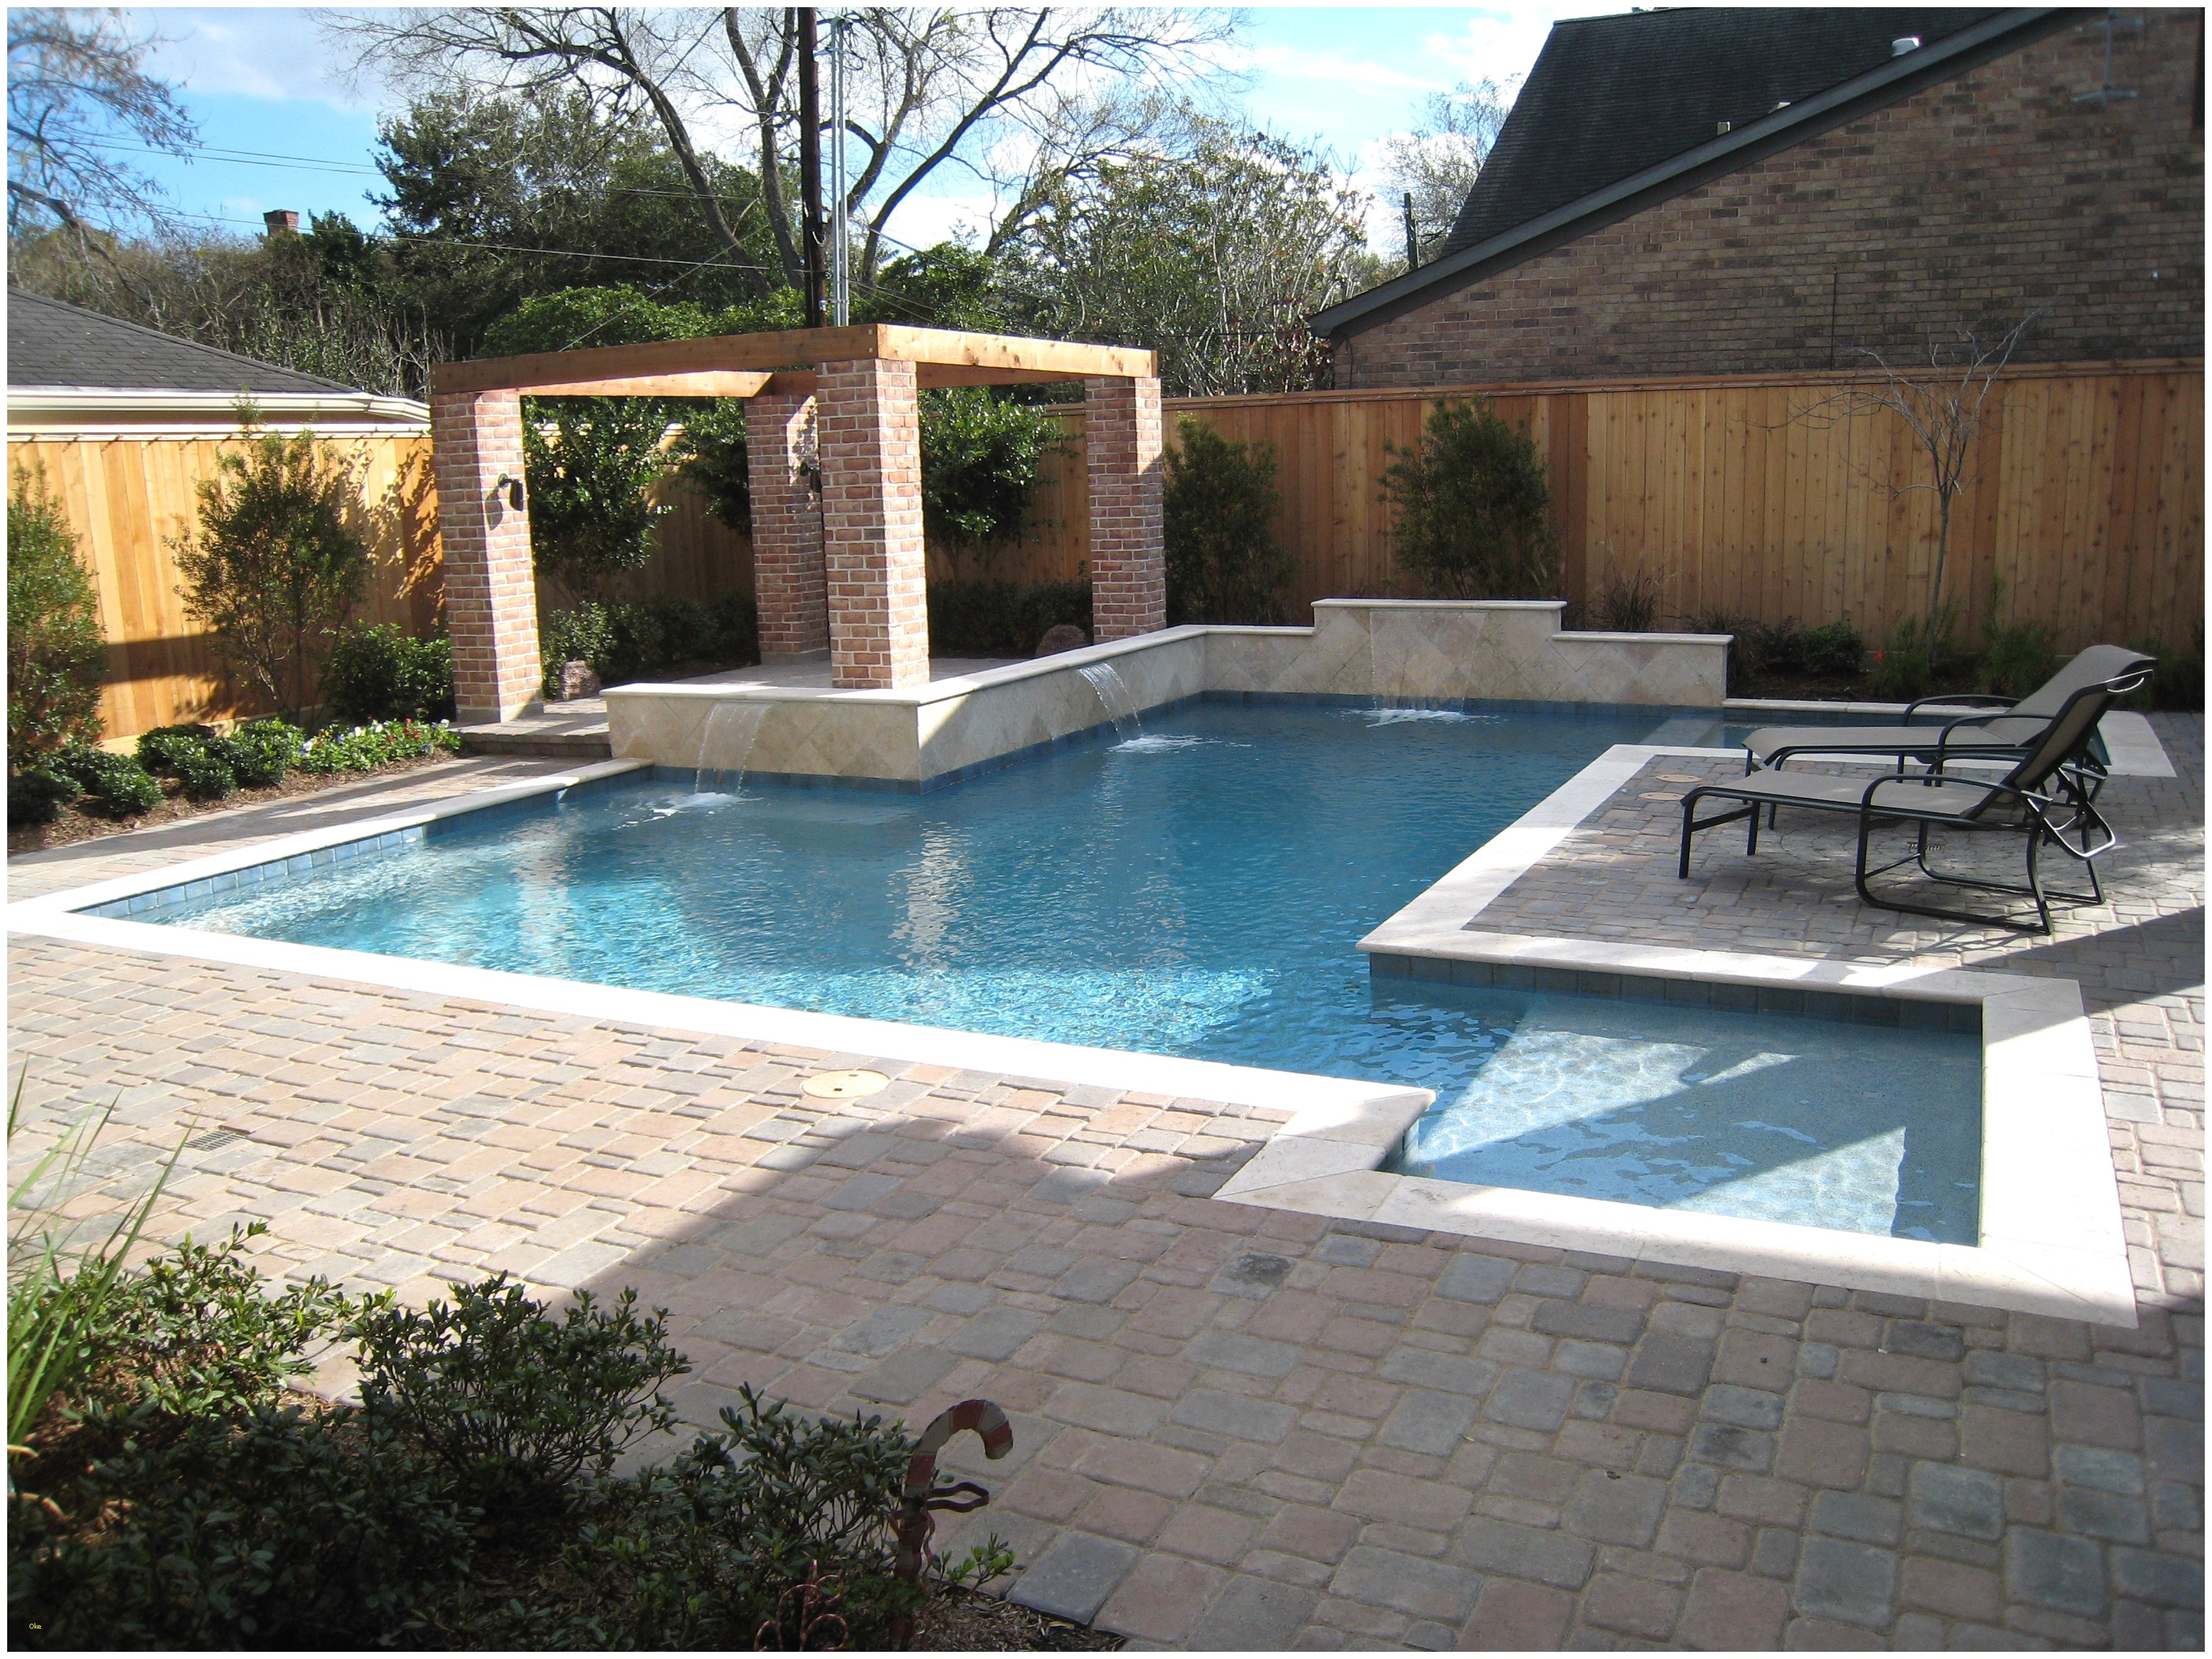 How Much Do Inground Pools Cost